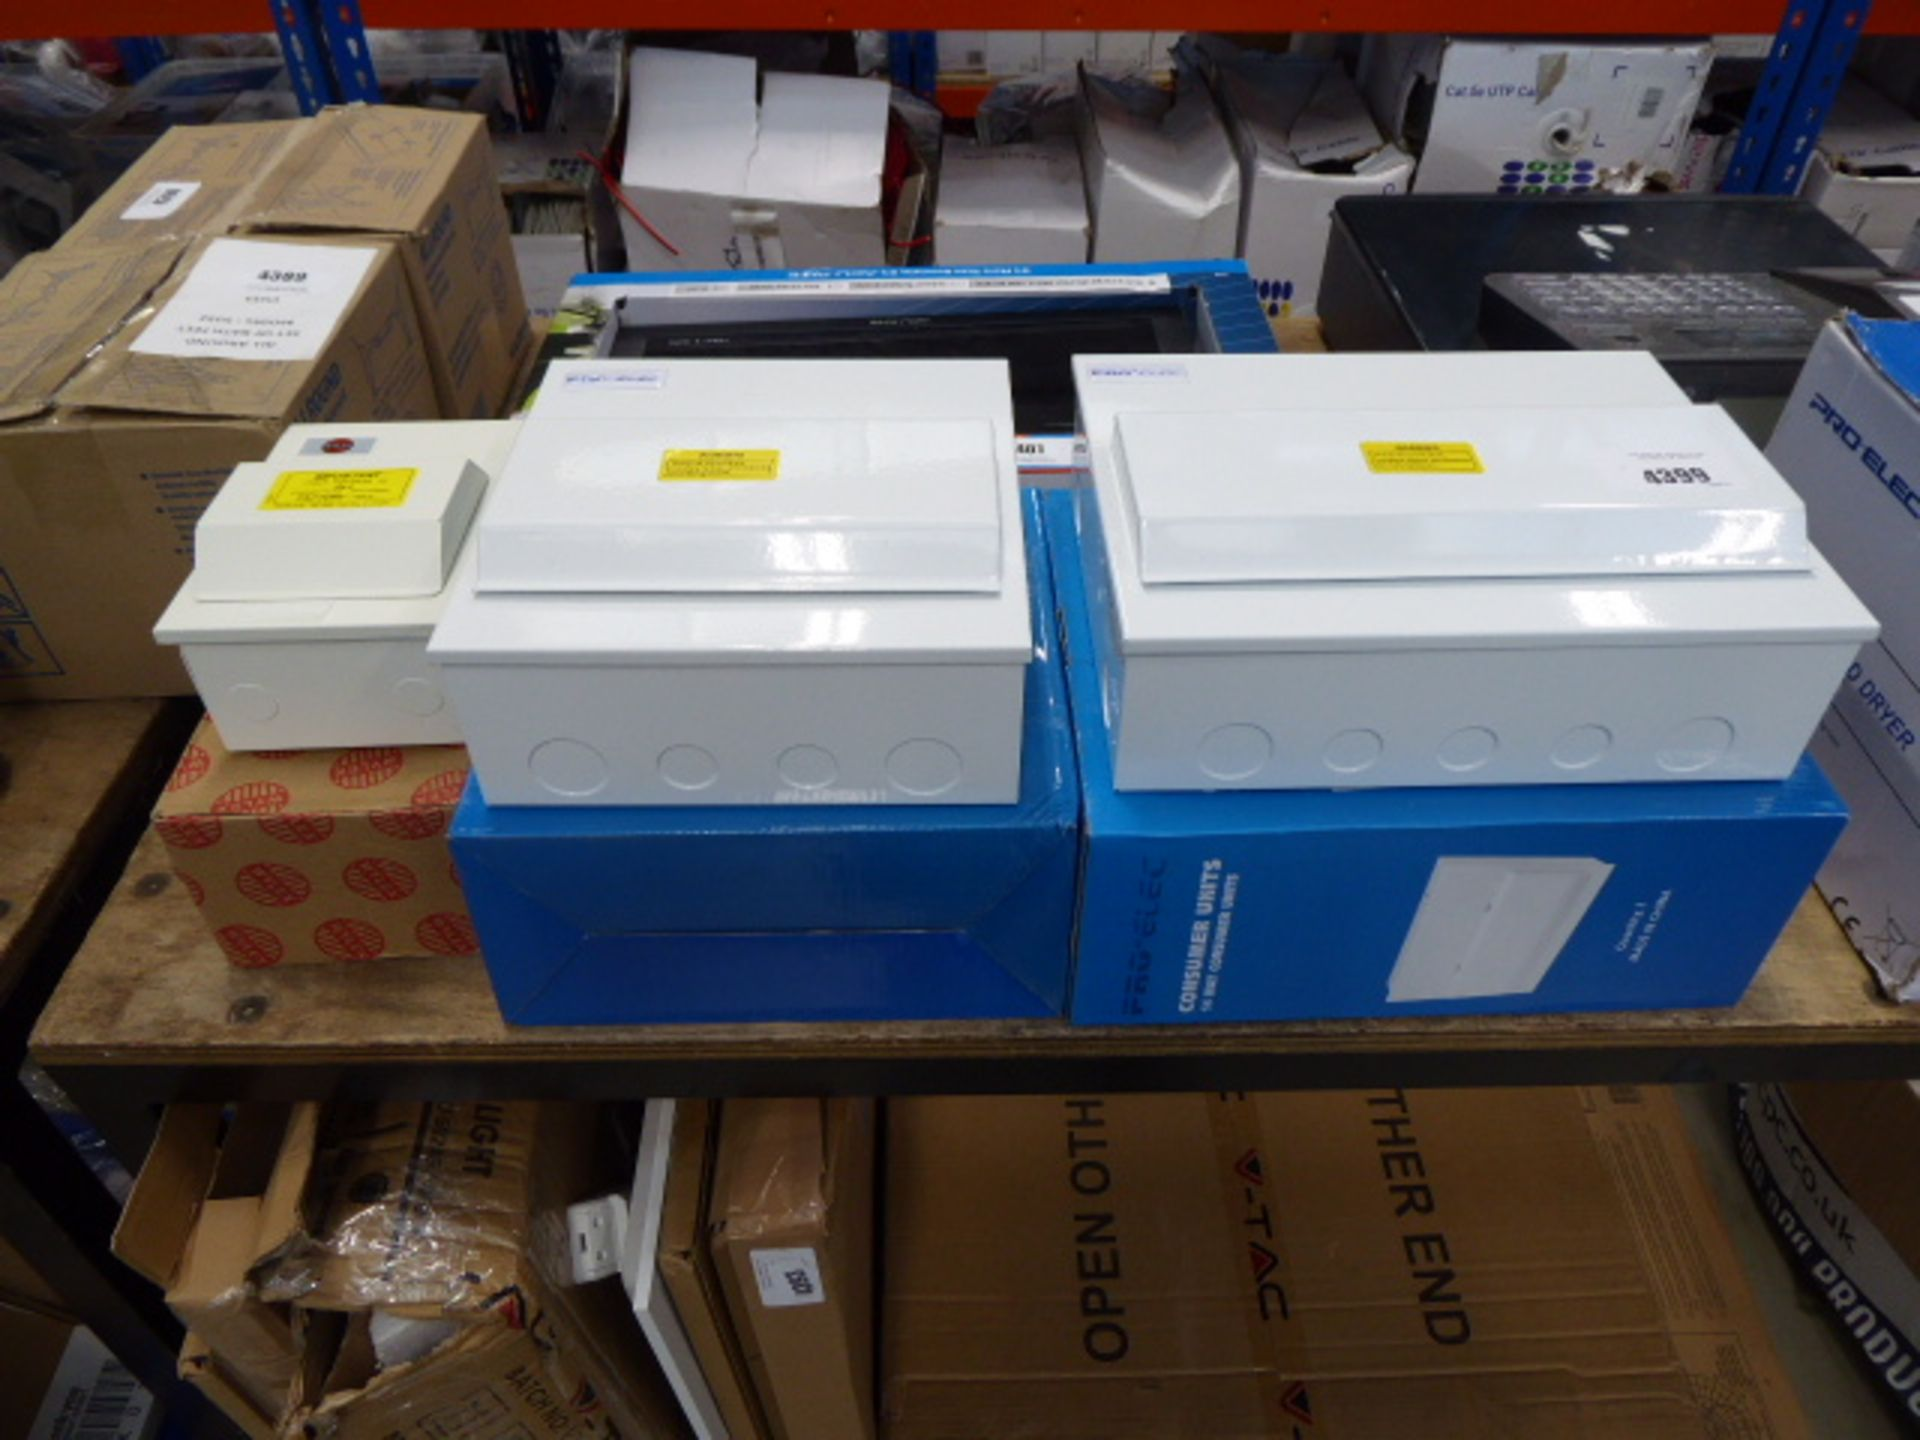 2 large and 1 small consumer units